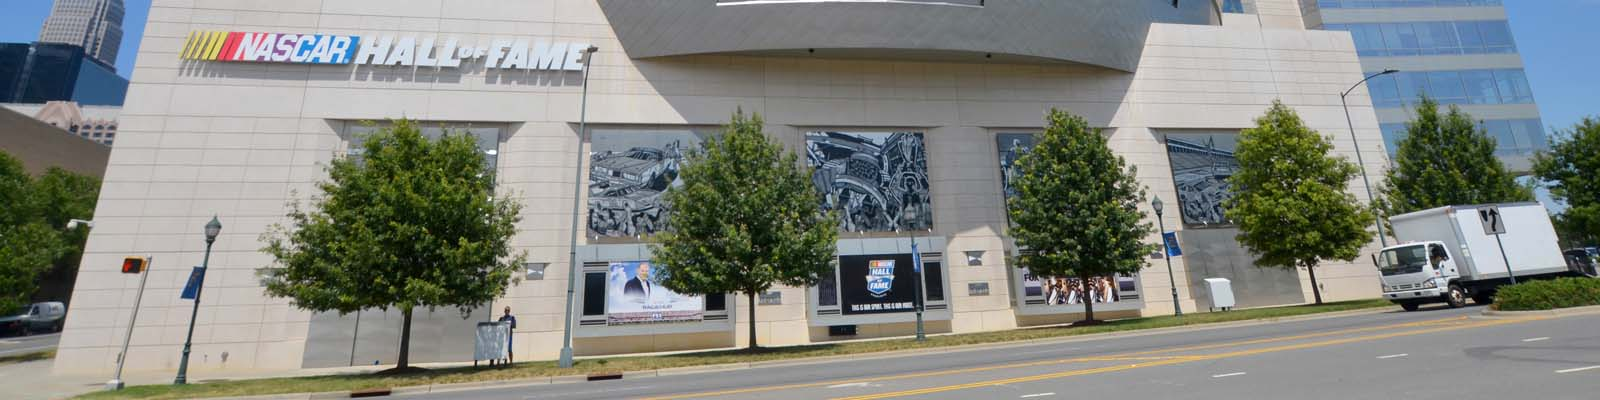 This is an image of the Nascar Hall of Fame building in Charlotte North Carolina. ASTA-USA provides professional translation services in this city.